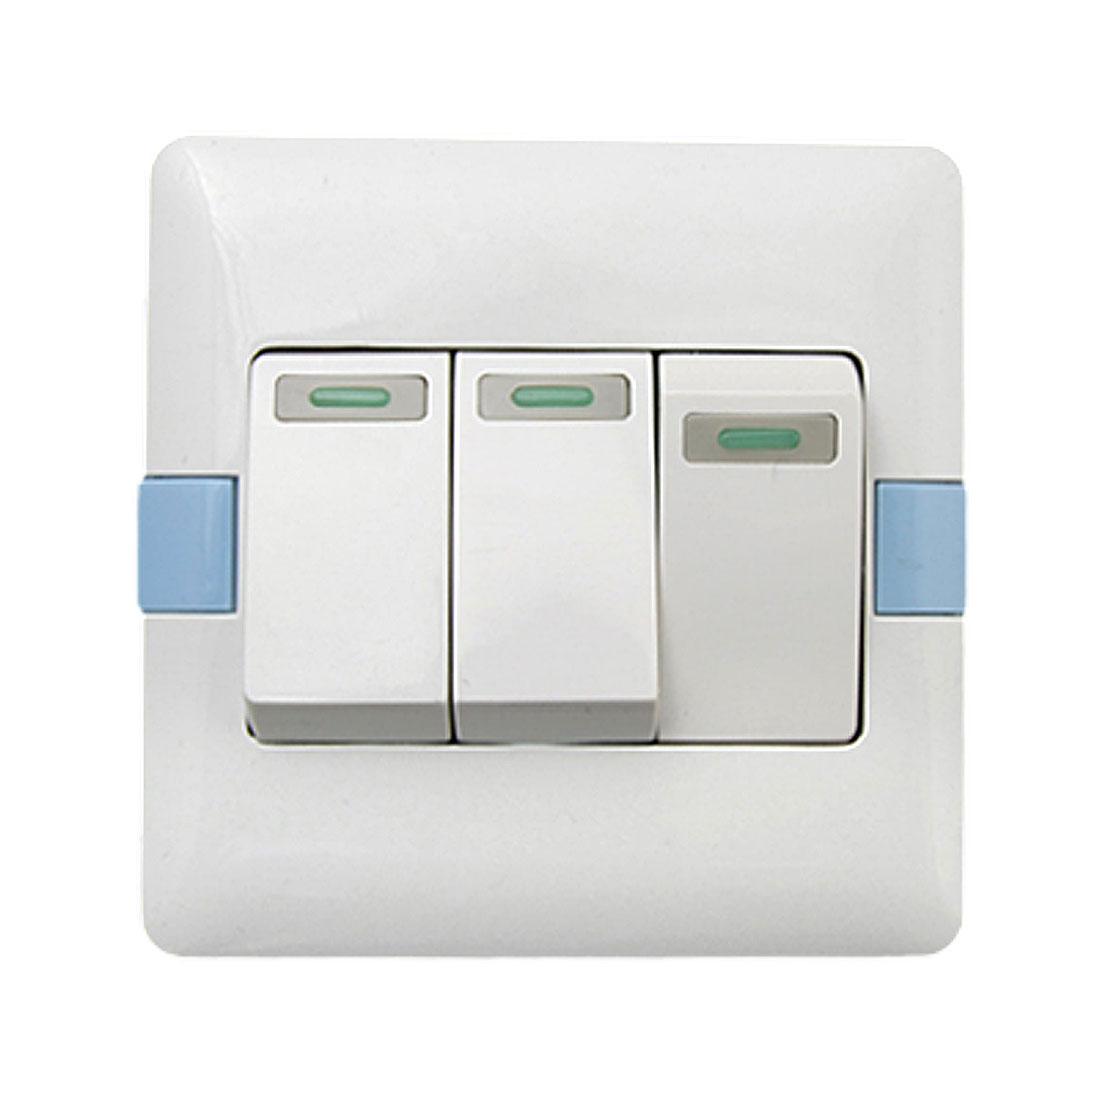 3 Gang Light Switch Wall Plate White(16A 250V)